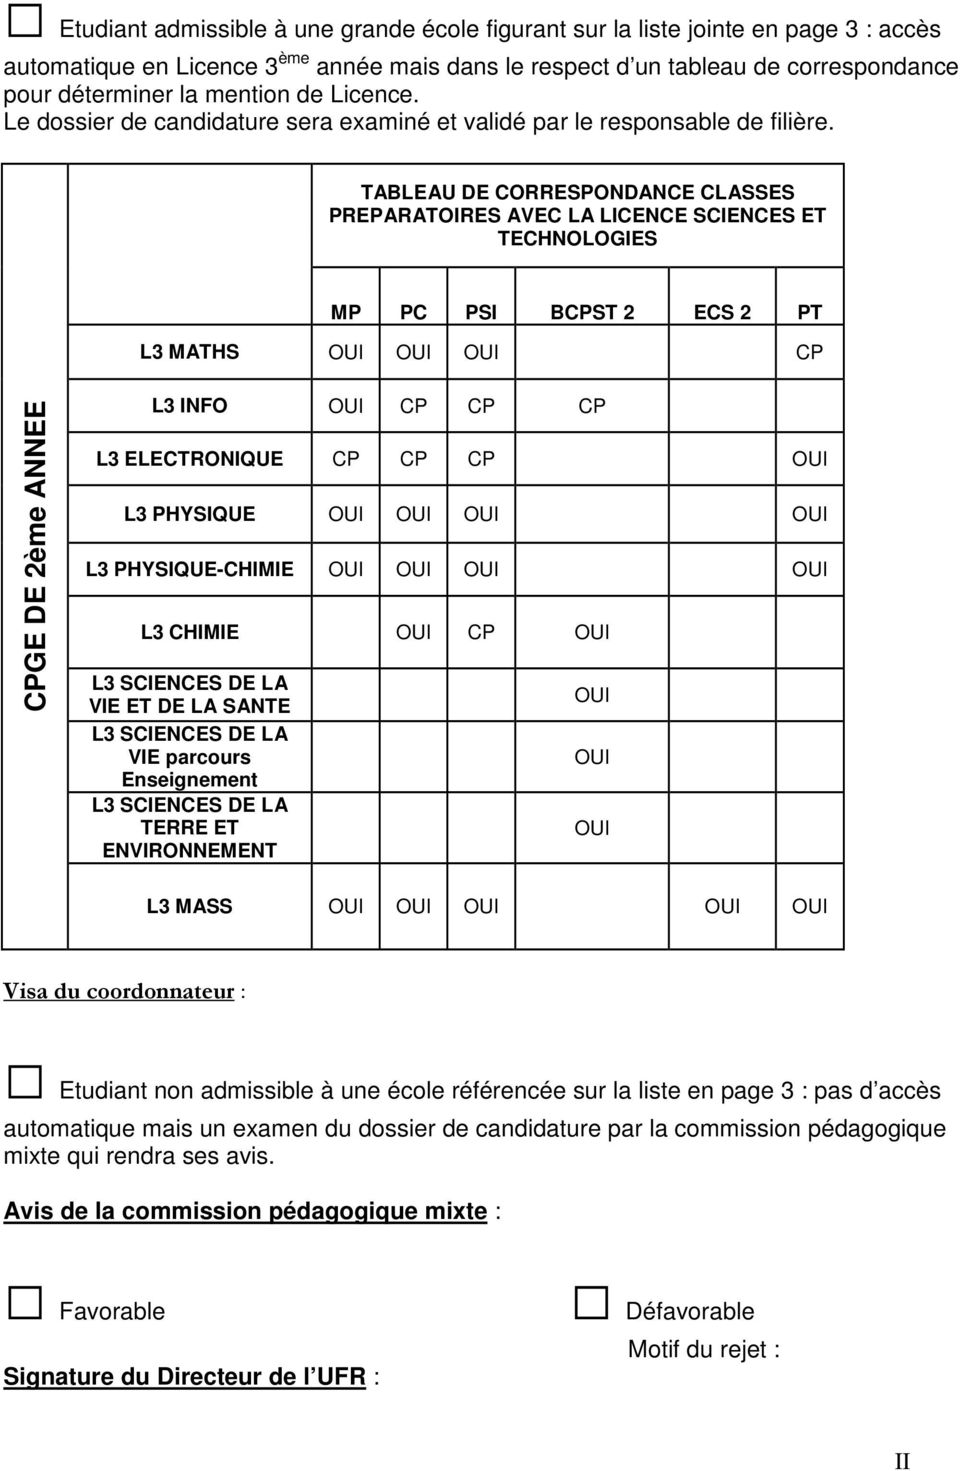 TABLEAU DE CORRESPONDANCE CLASSES PREPARATOIRES AVEC LA LICENCE SCIENCES ET TECHNOLOGIES MP PC PSI BCPST 2 ECS 2 PT L3 MATHS CP CPGE DE 2ème ANNEE L3 INFO CP CP CP L3 ELECTRONIQUE CP CP CP L3